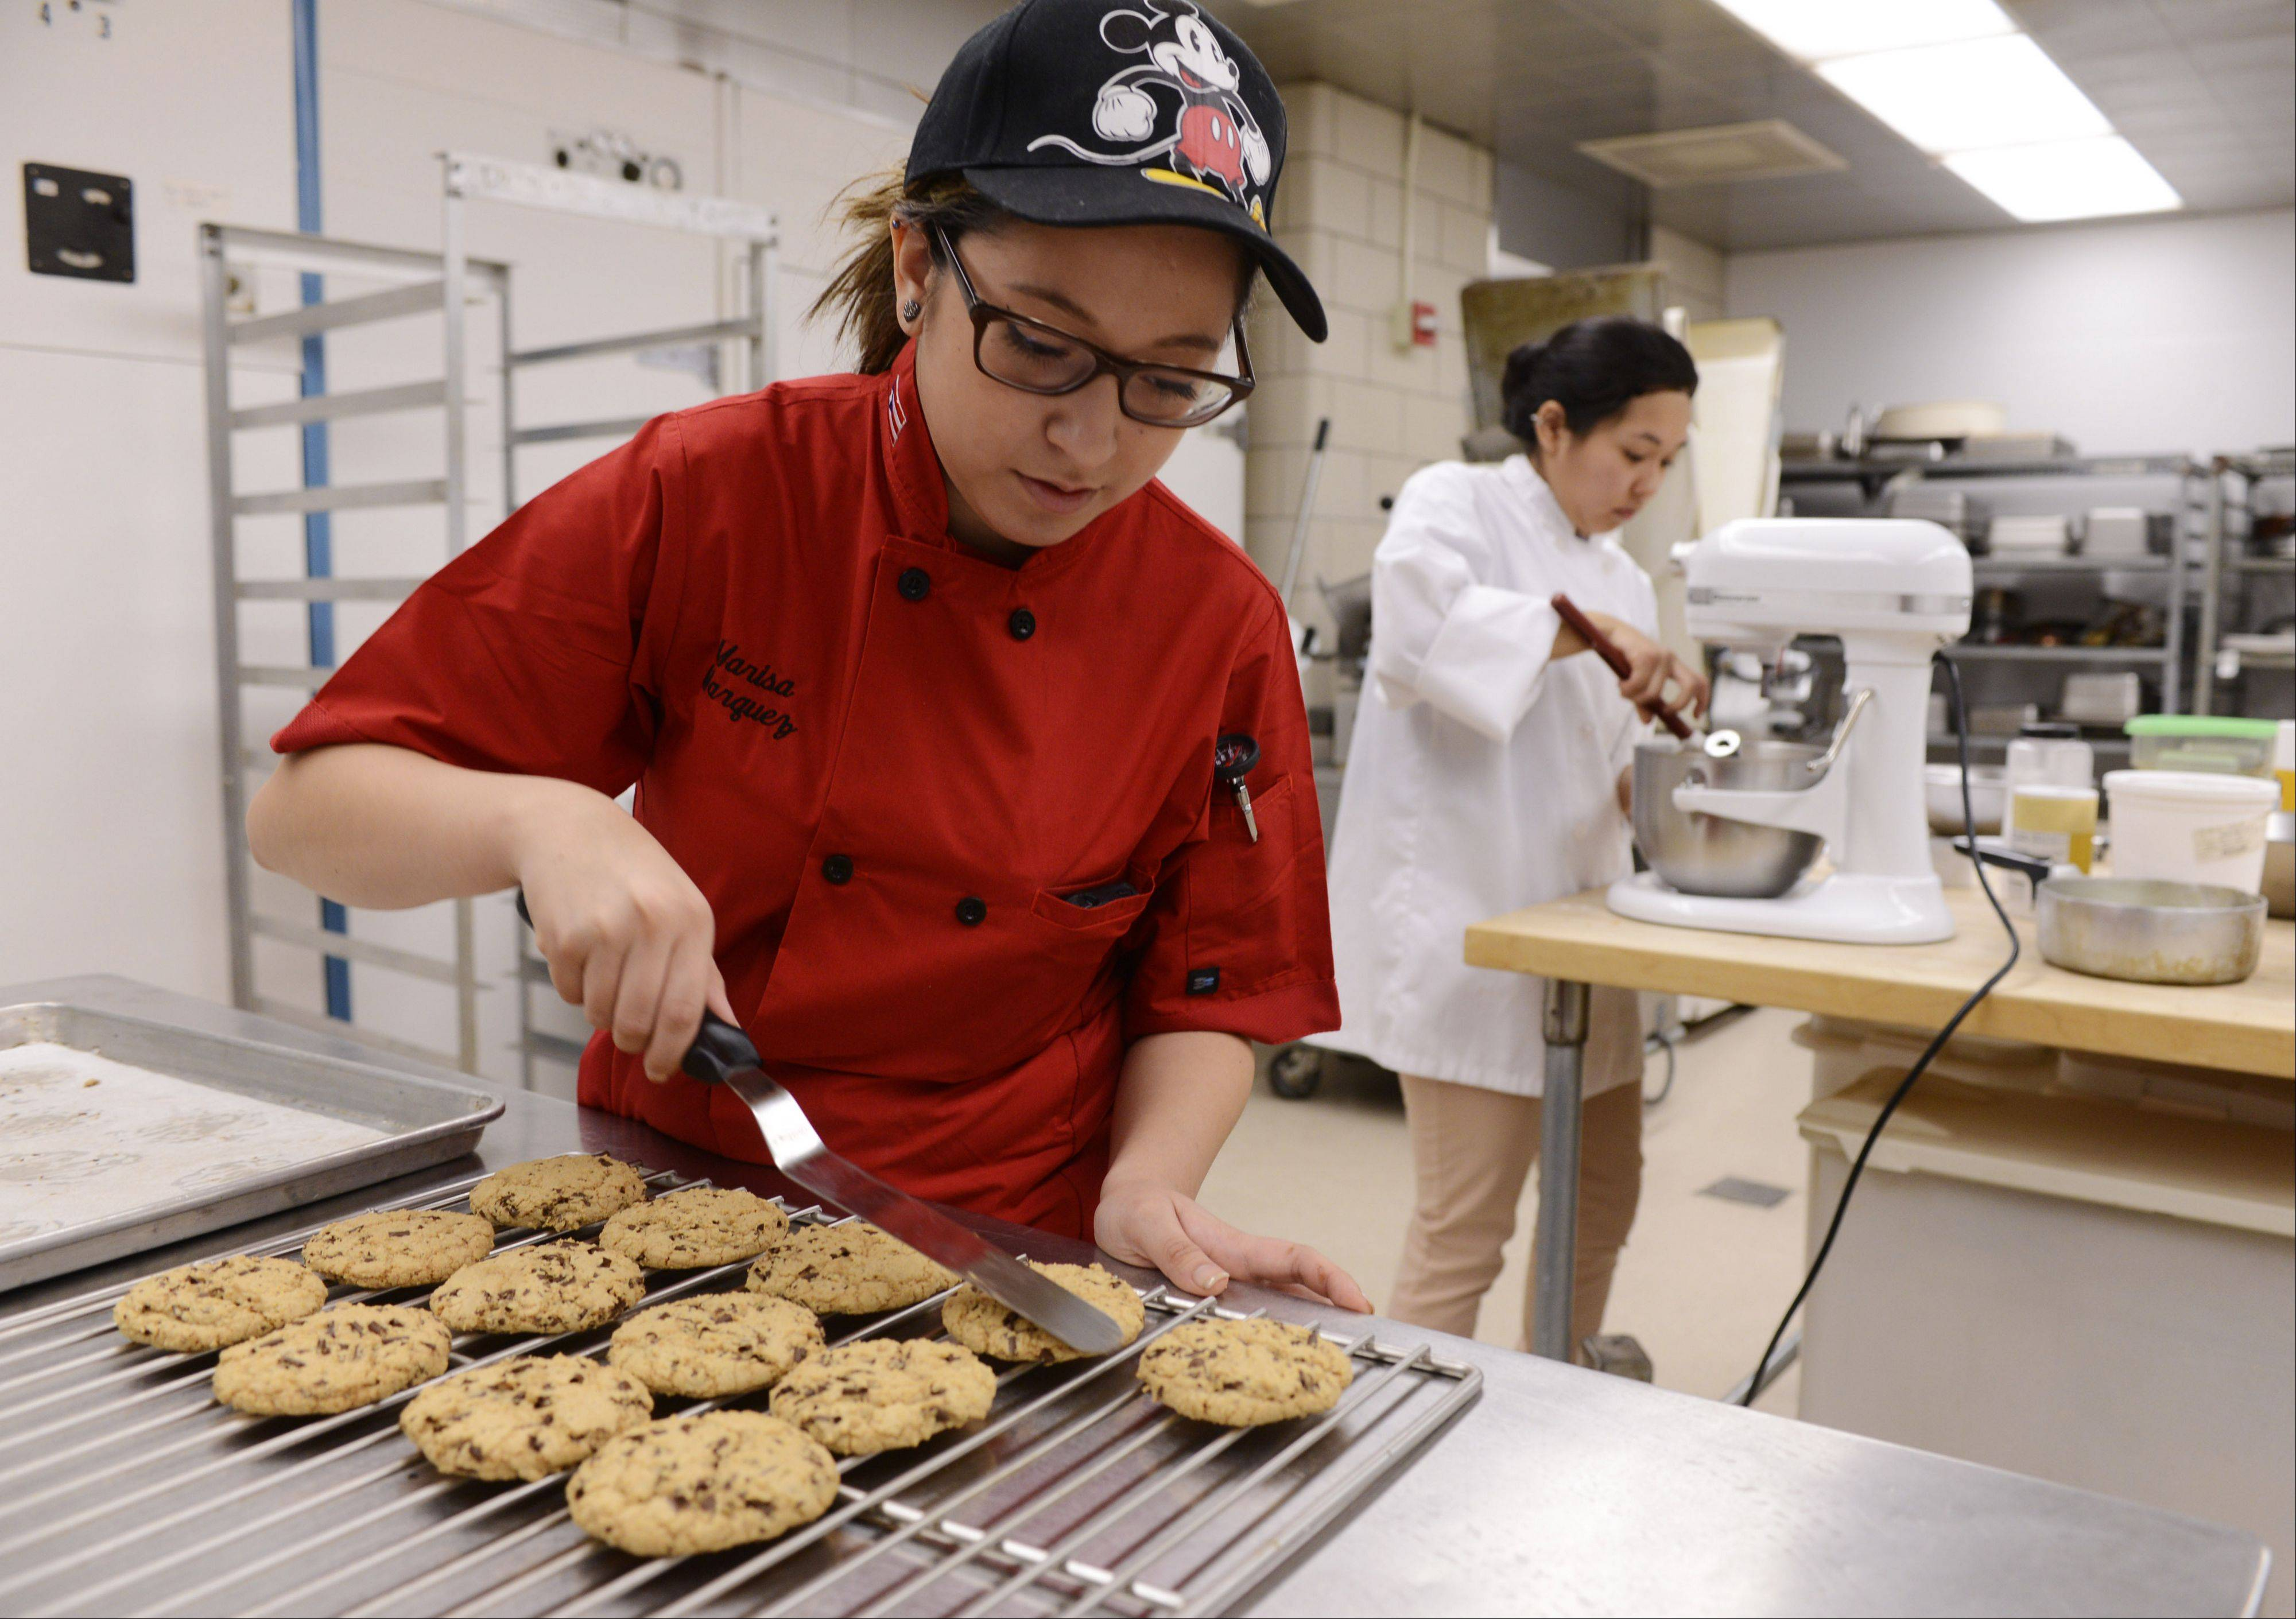 Marquez places cookies on a cooling rack in the Harper College kitchen.